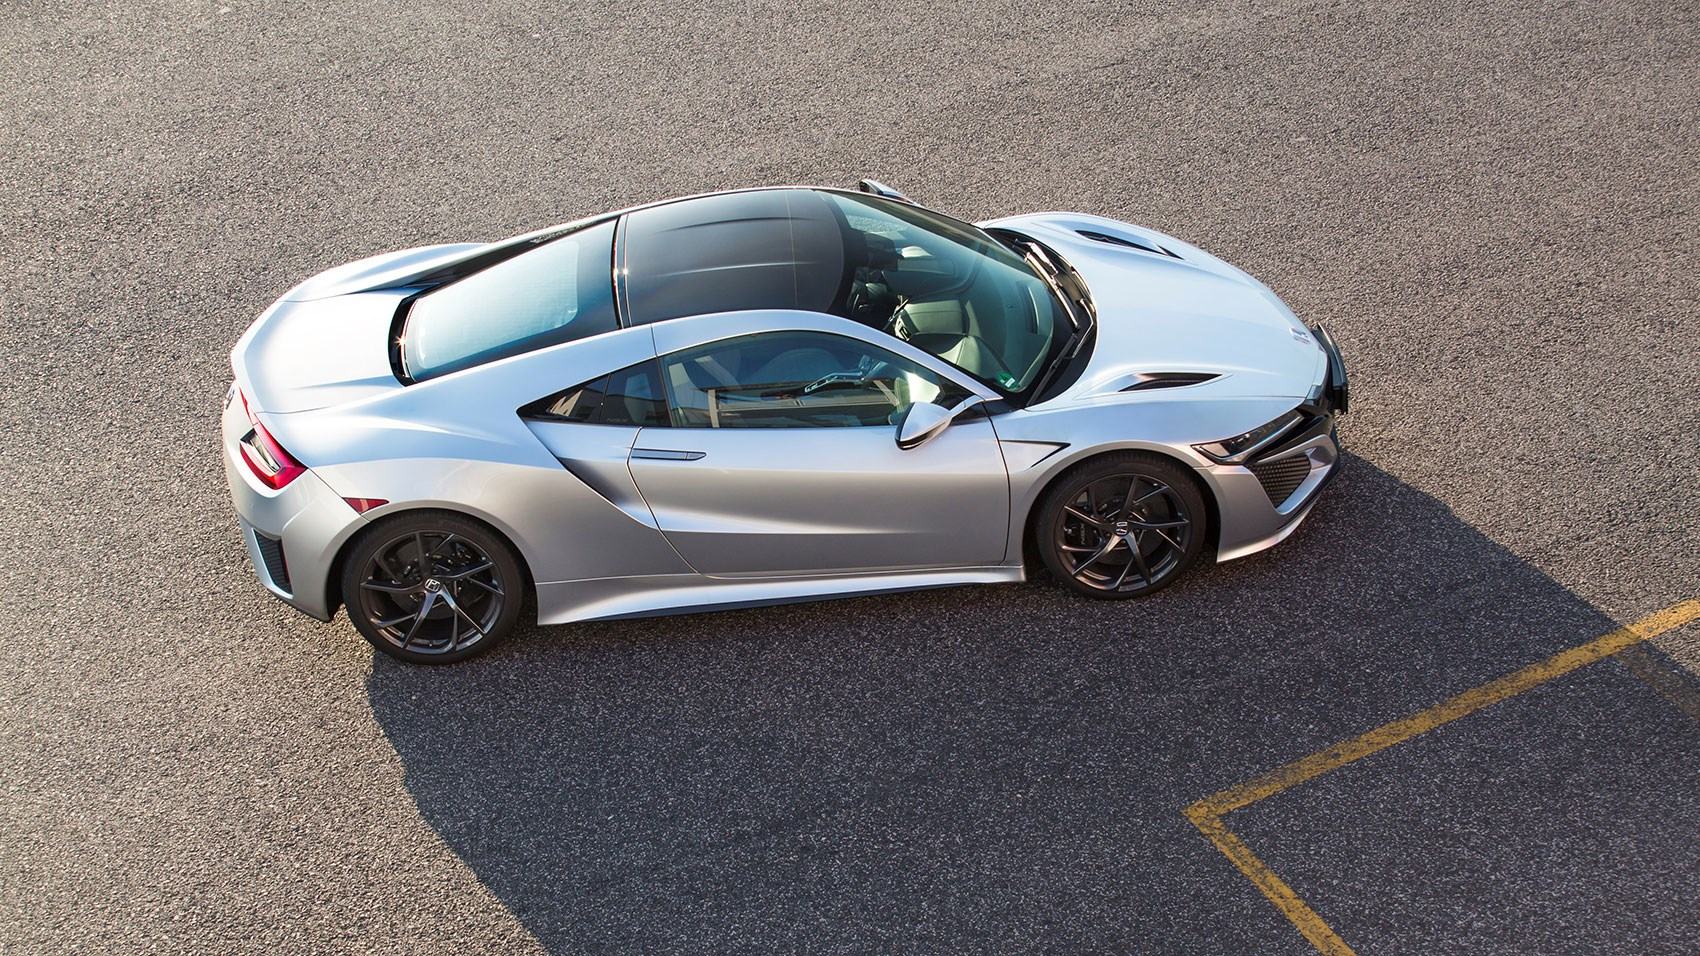 Acura Lease Deals >> Honda NSX (2016) review | CAR Magazine